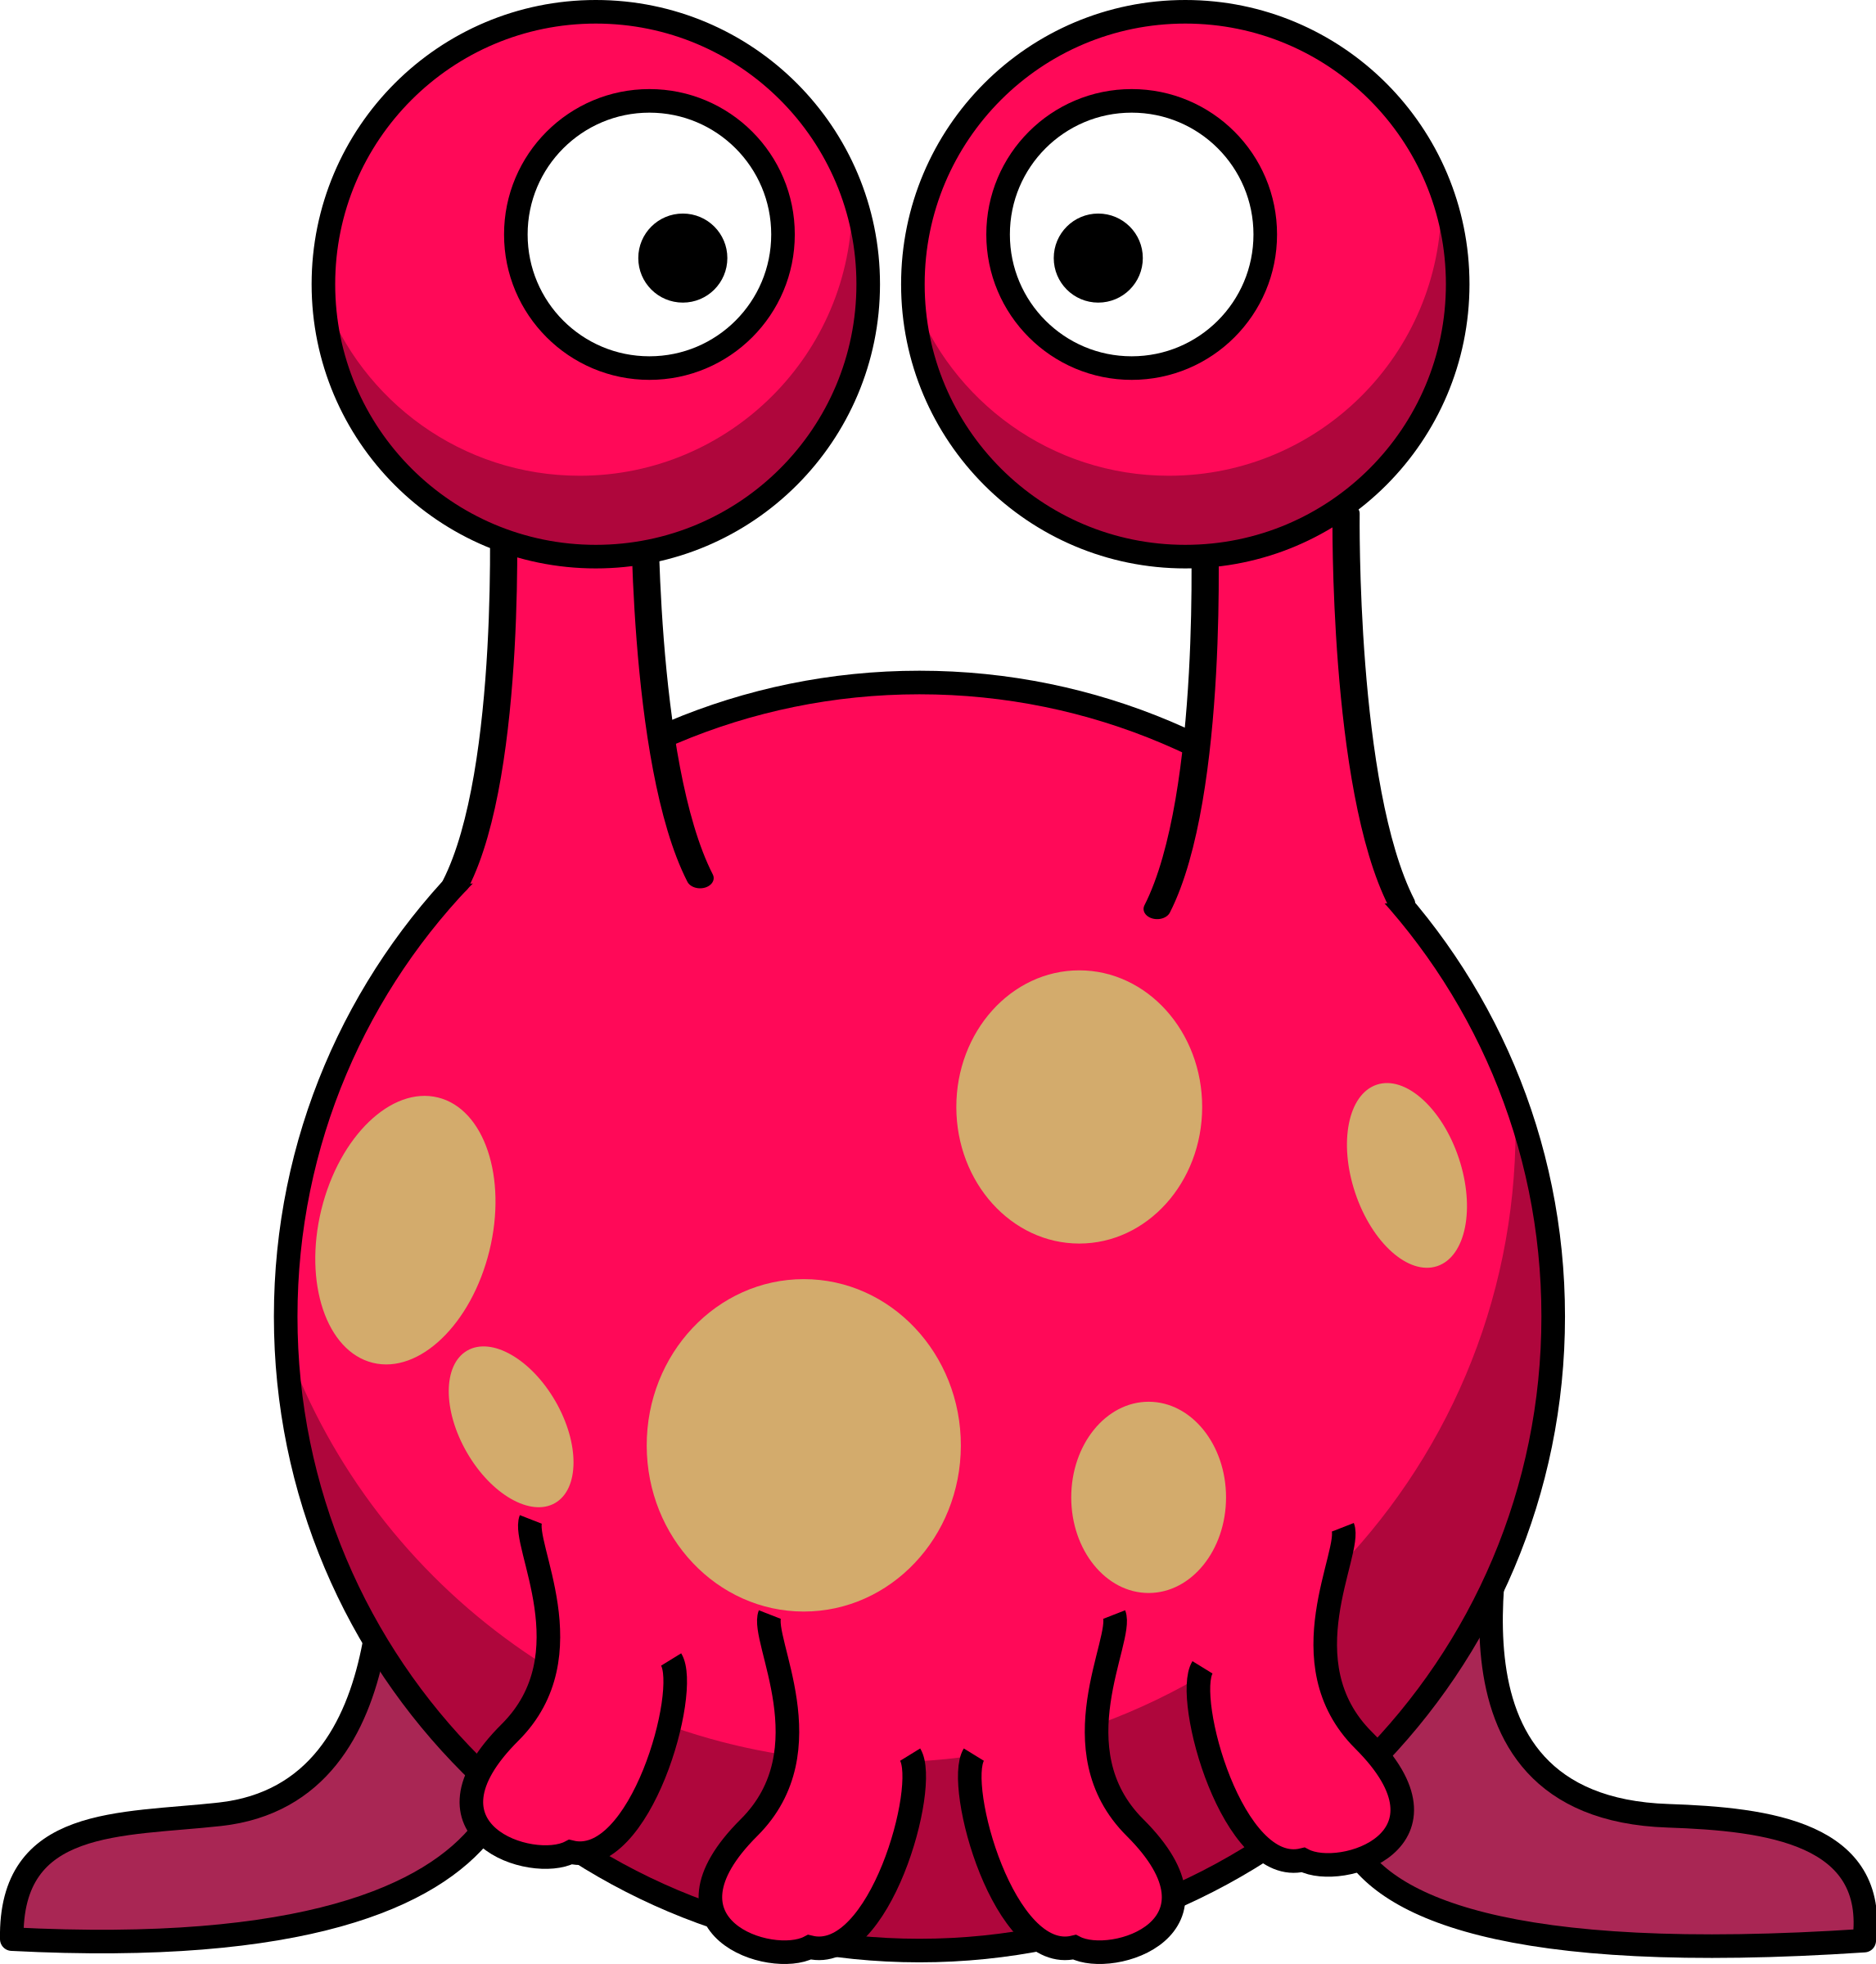 Clipart silly alien in the style of lemm-Clipart silly alien in the style of lemmling-1